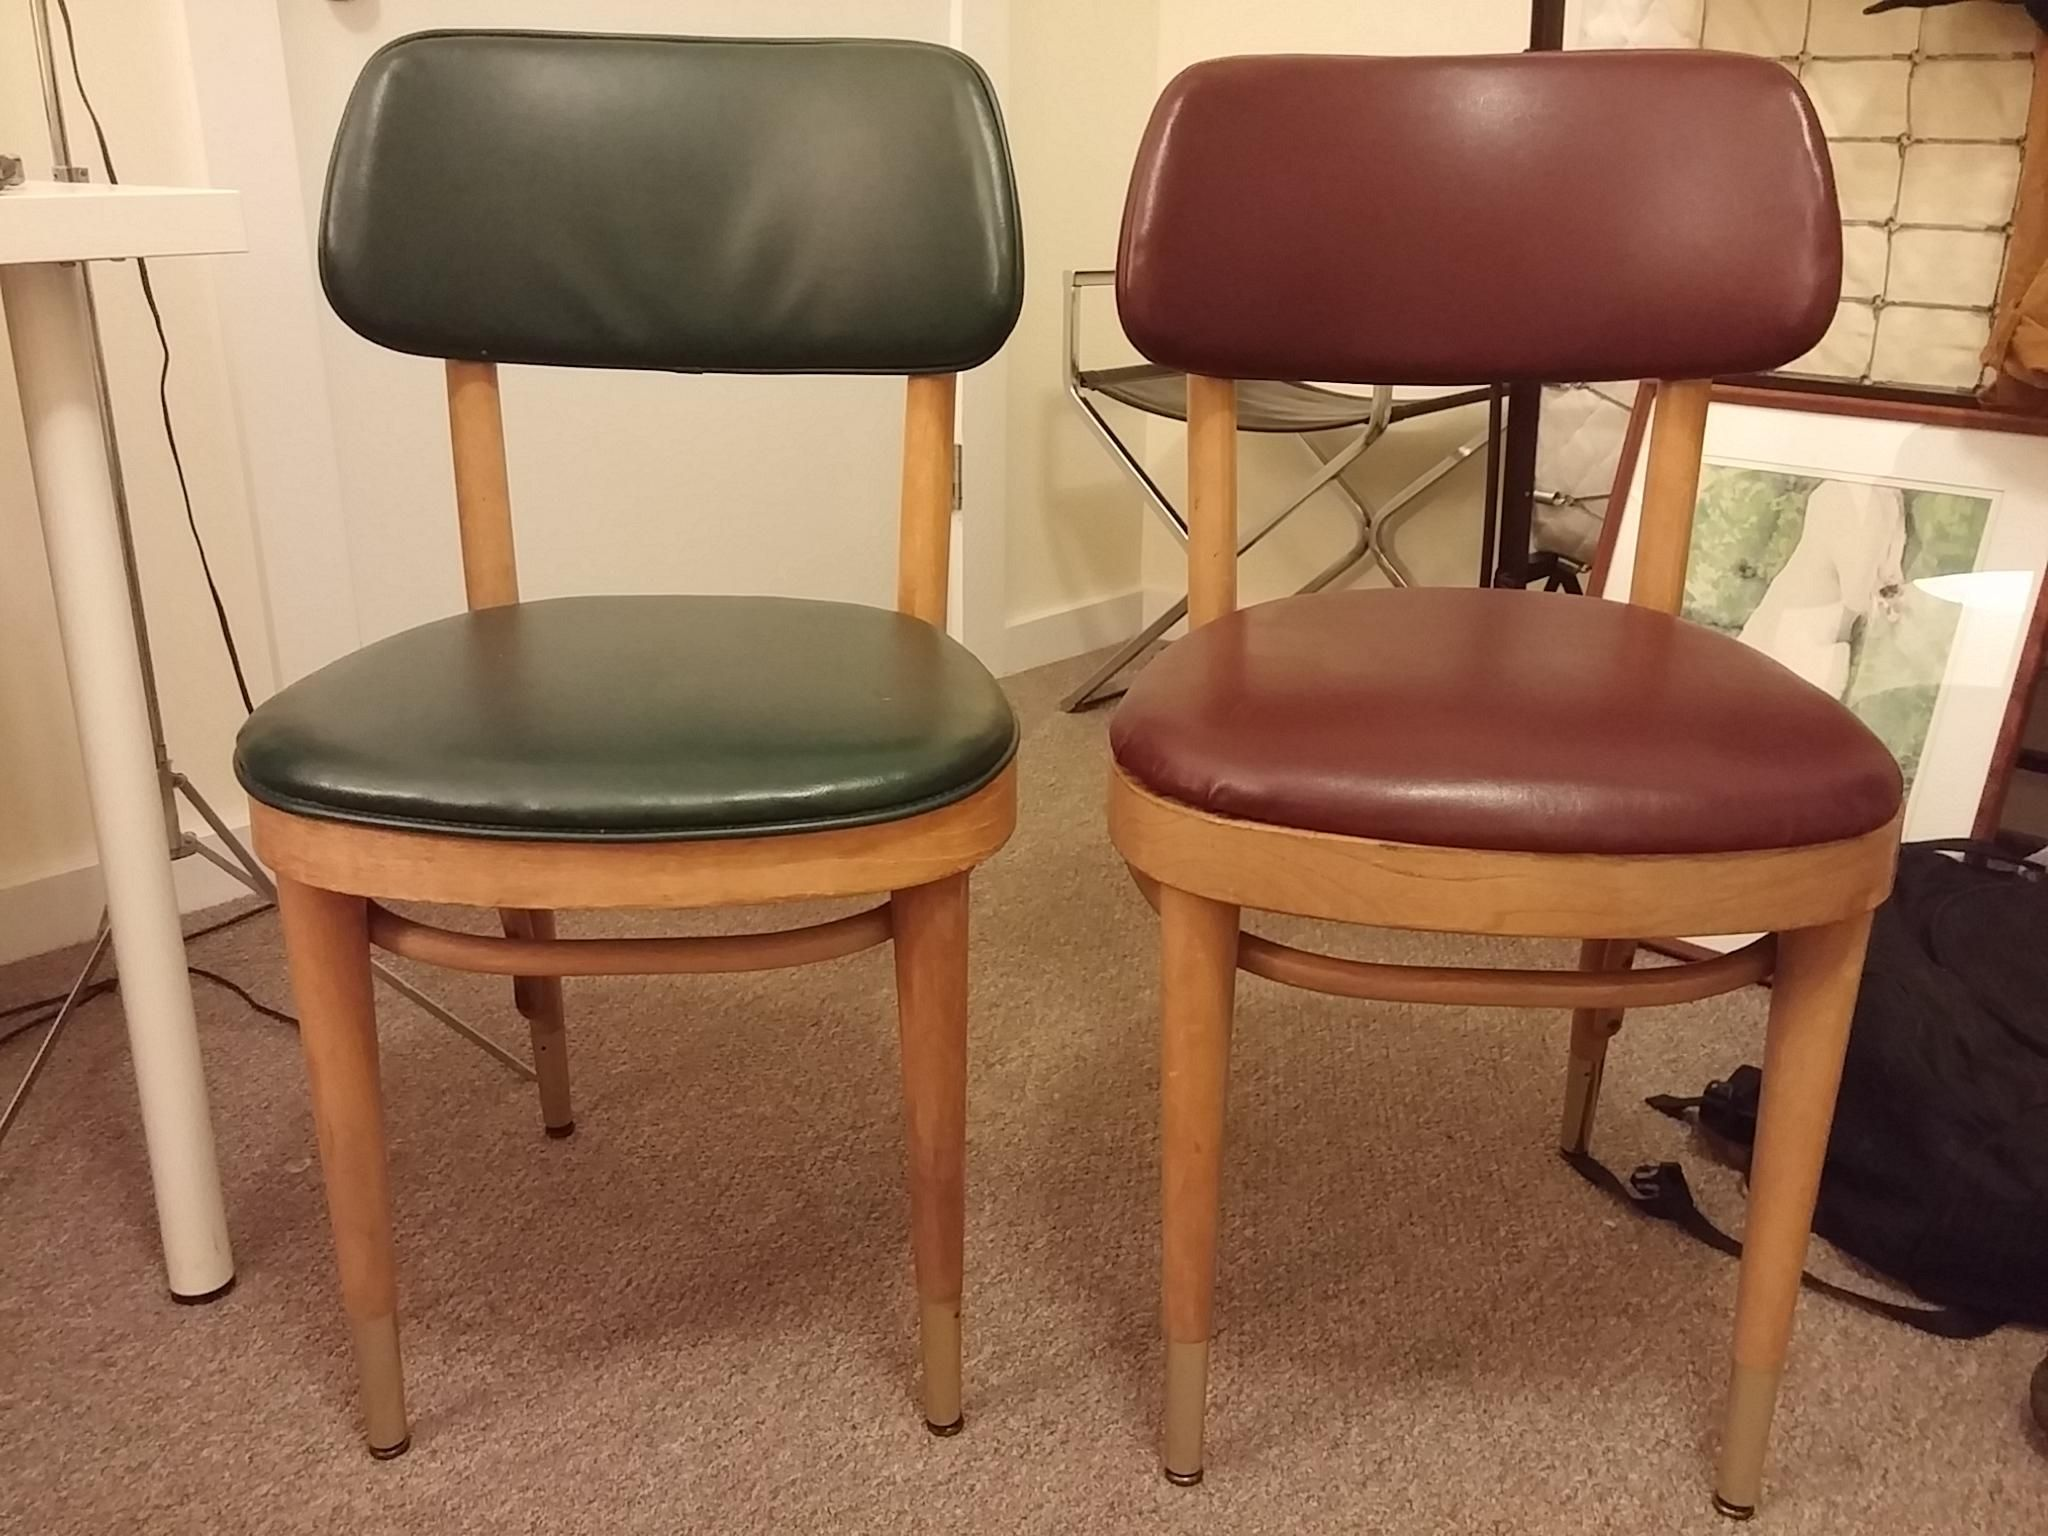 Picked up a couple Thonet chairs. Anyway have any idea of their value? Thanks!